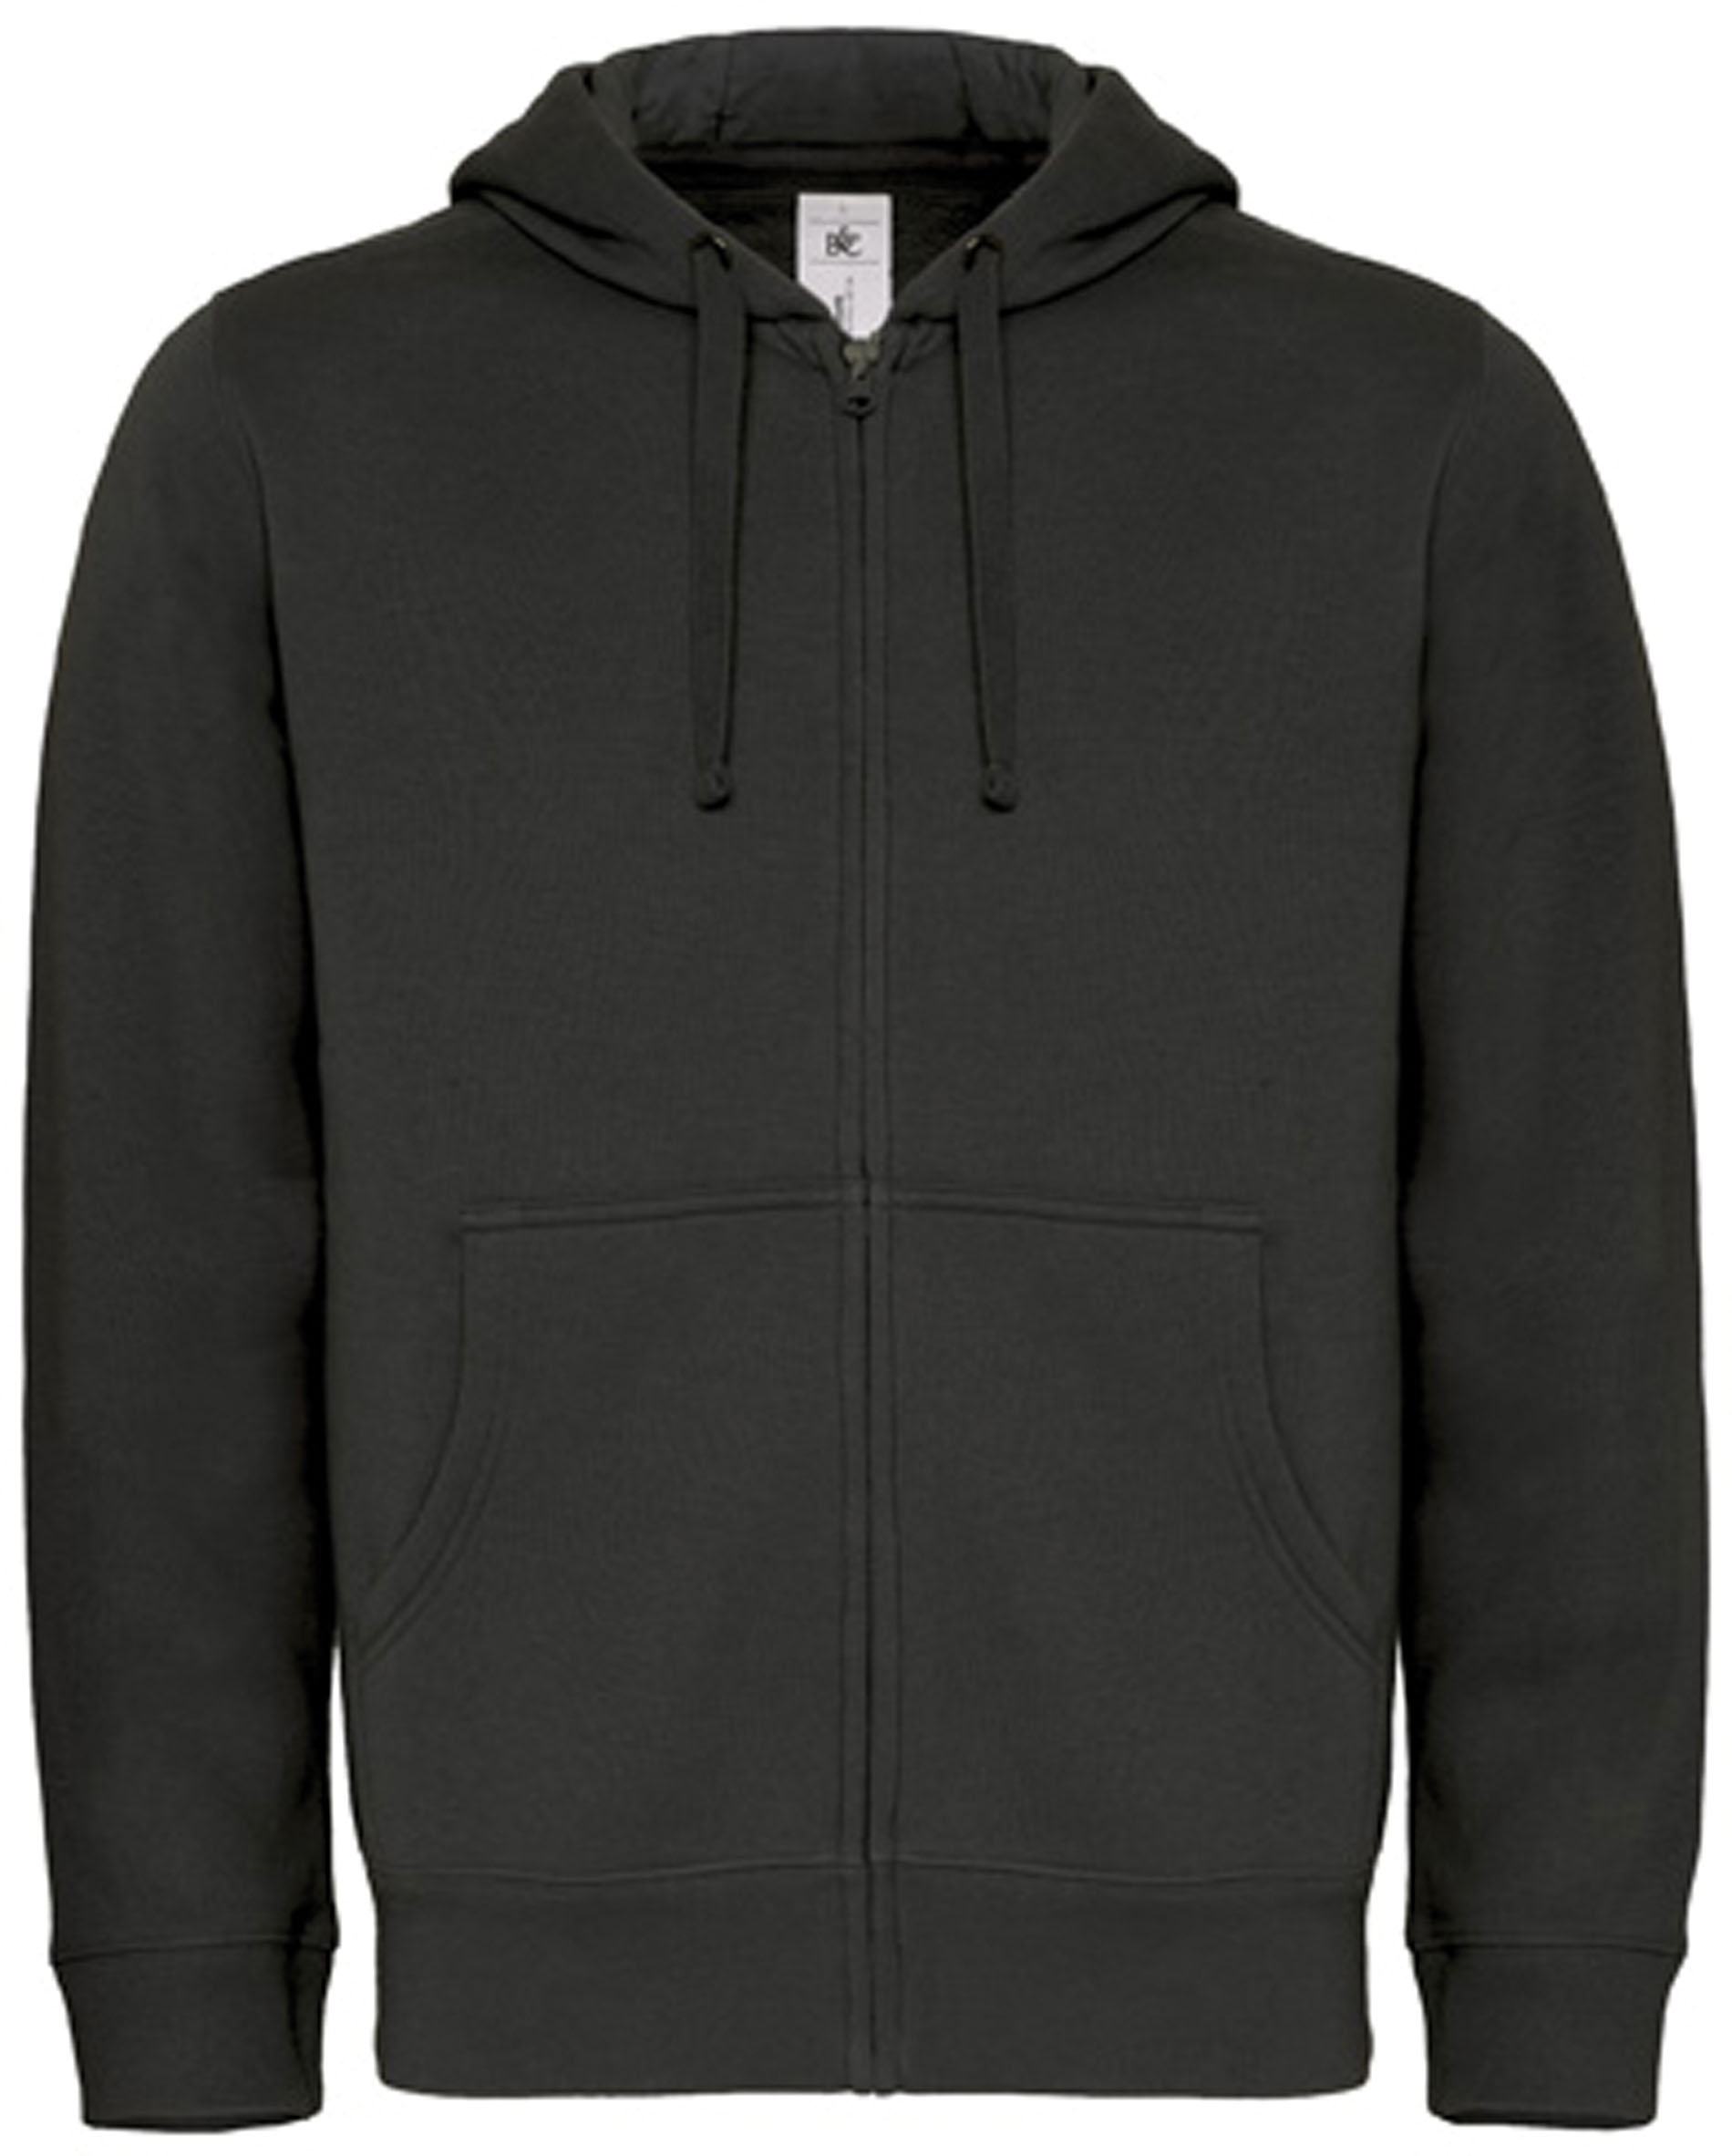 SWEAT SHIRT HOMME ZIPPÉ CAPUCHE